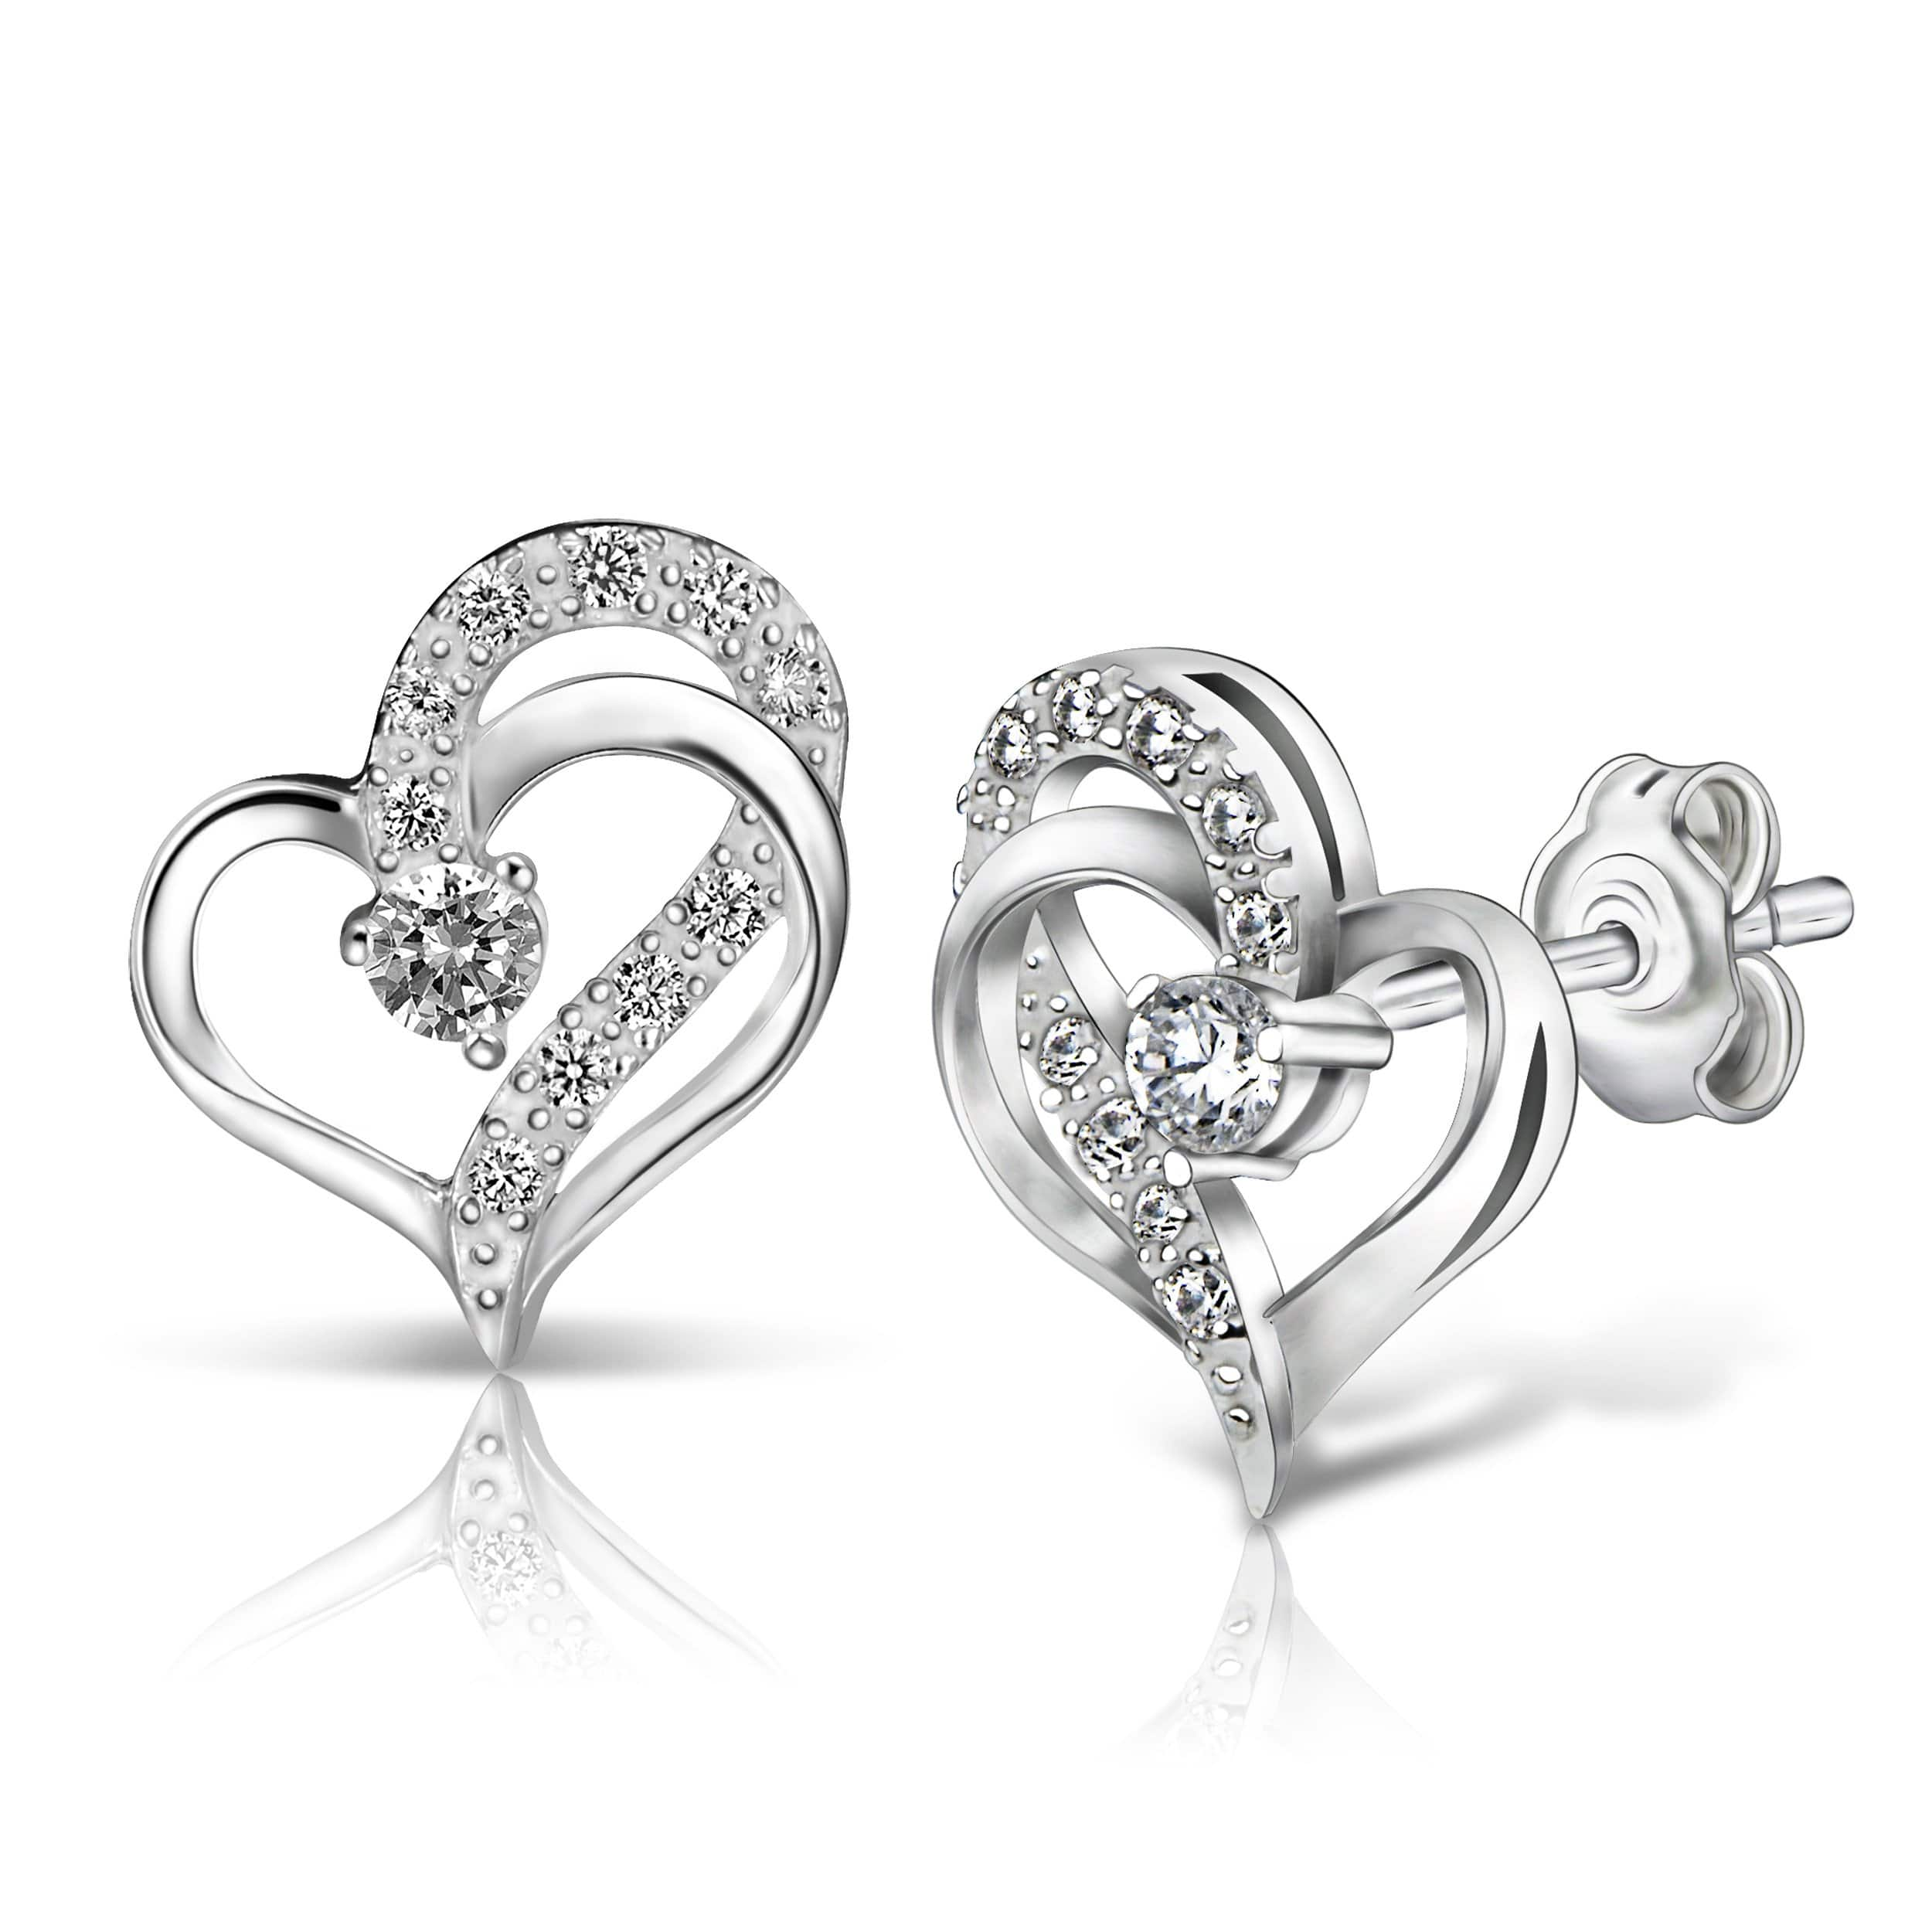 Eternity Double Heart Stud Earrings Sterling Silver